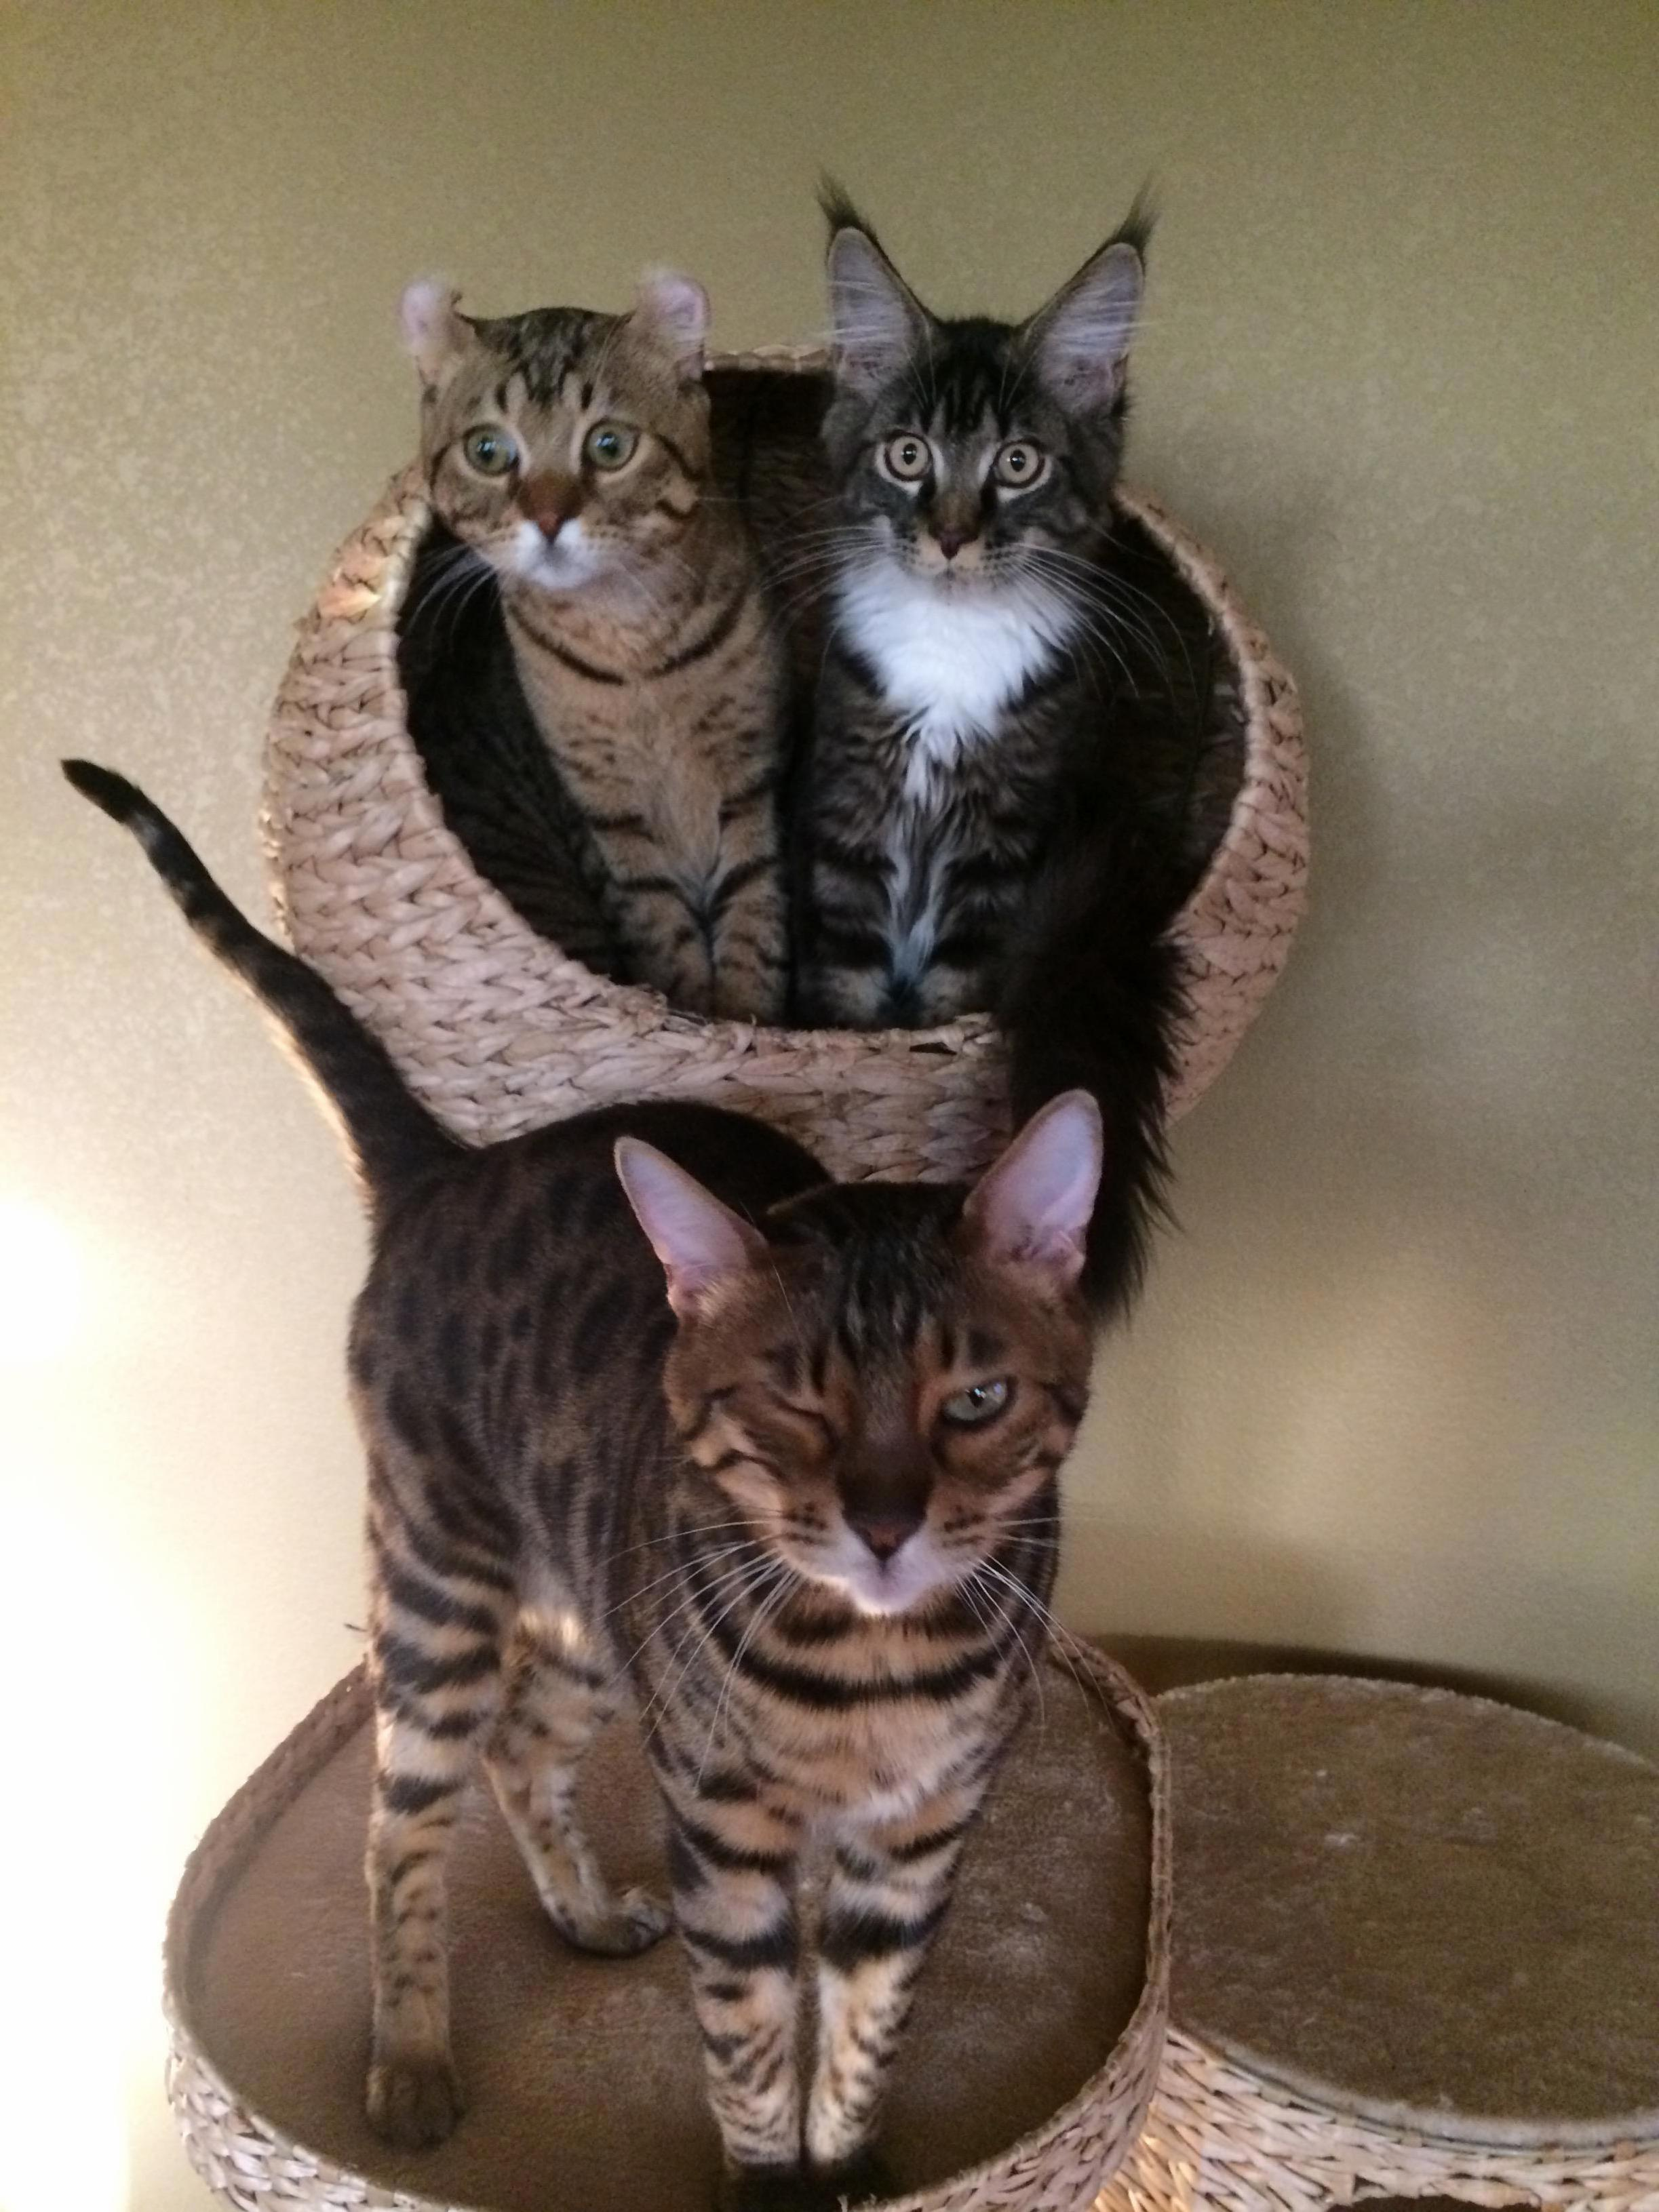 The three mouseketeers enjoying the new cat tree.